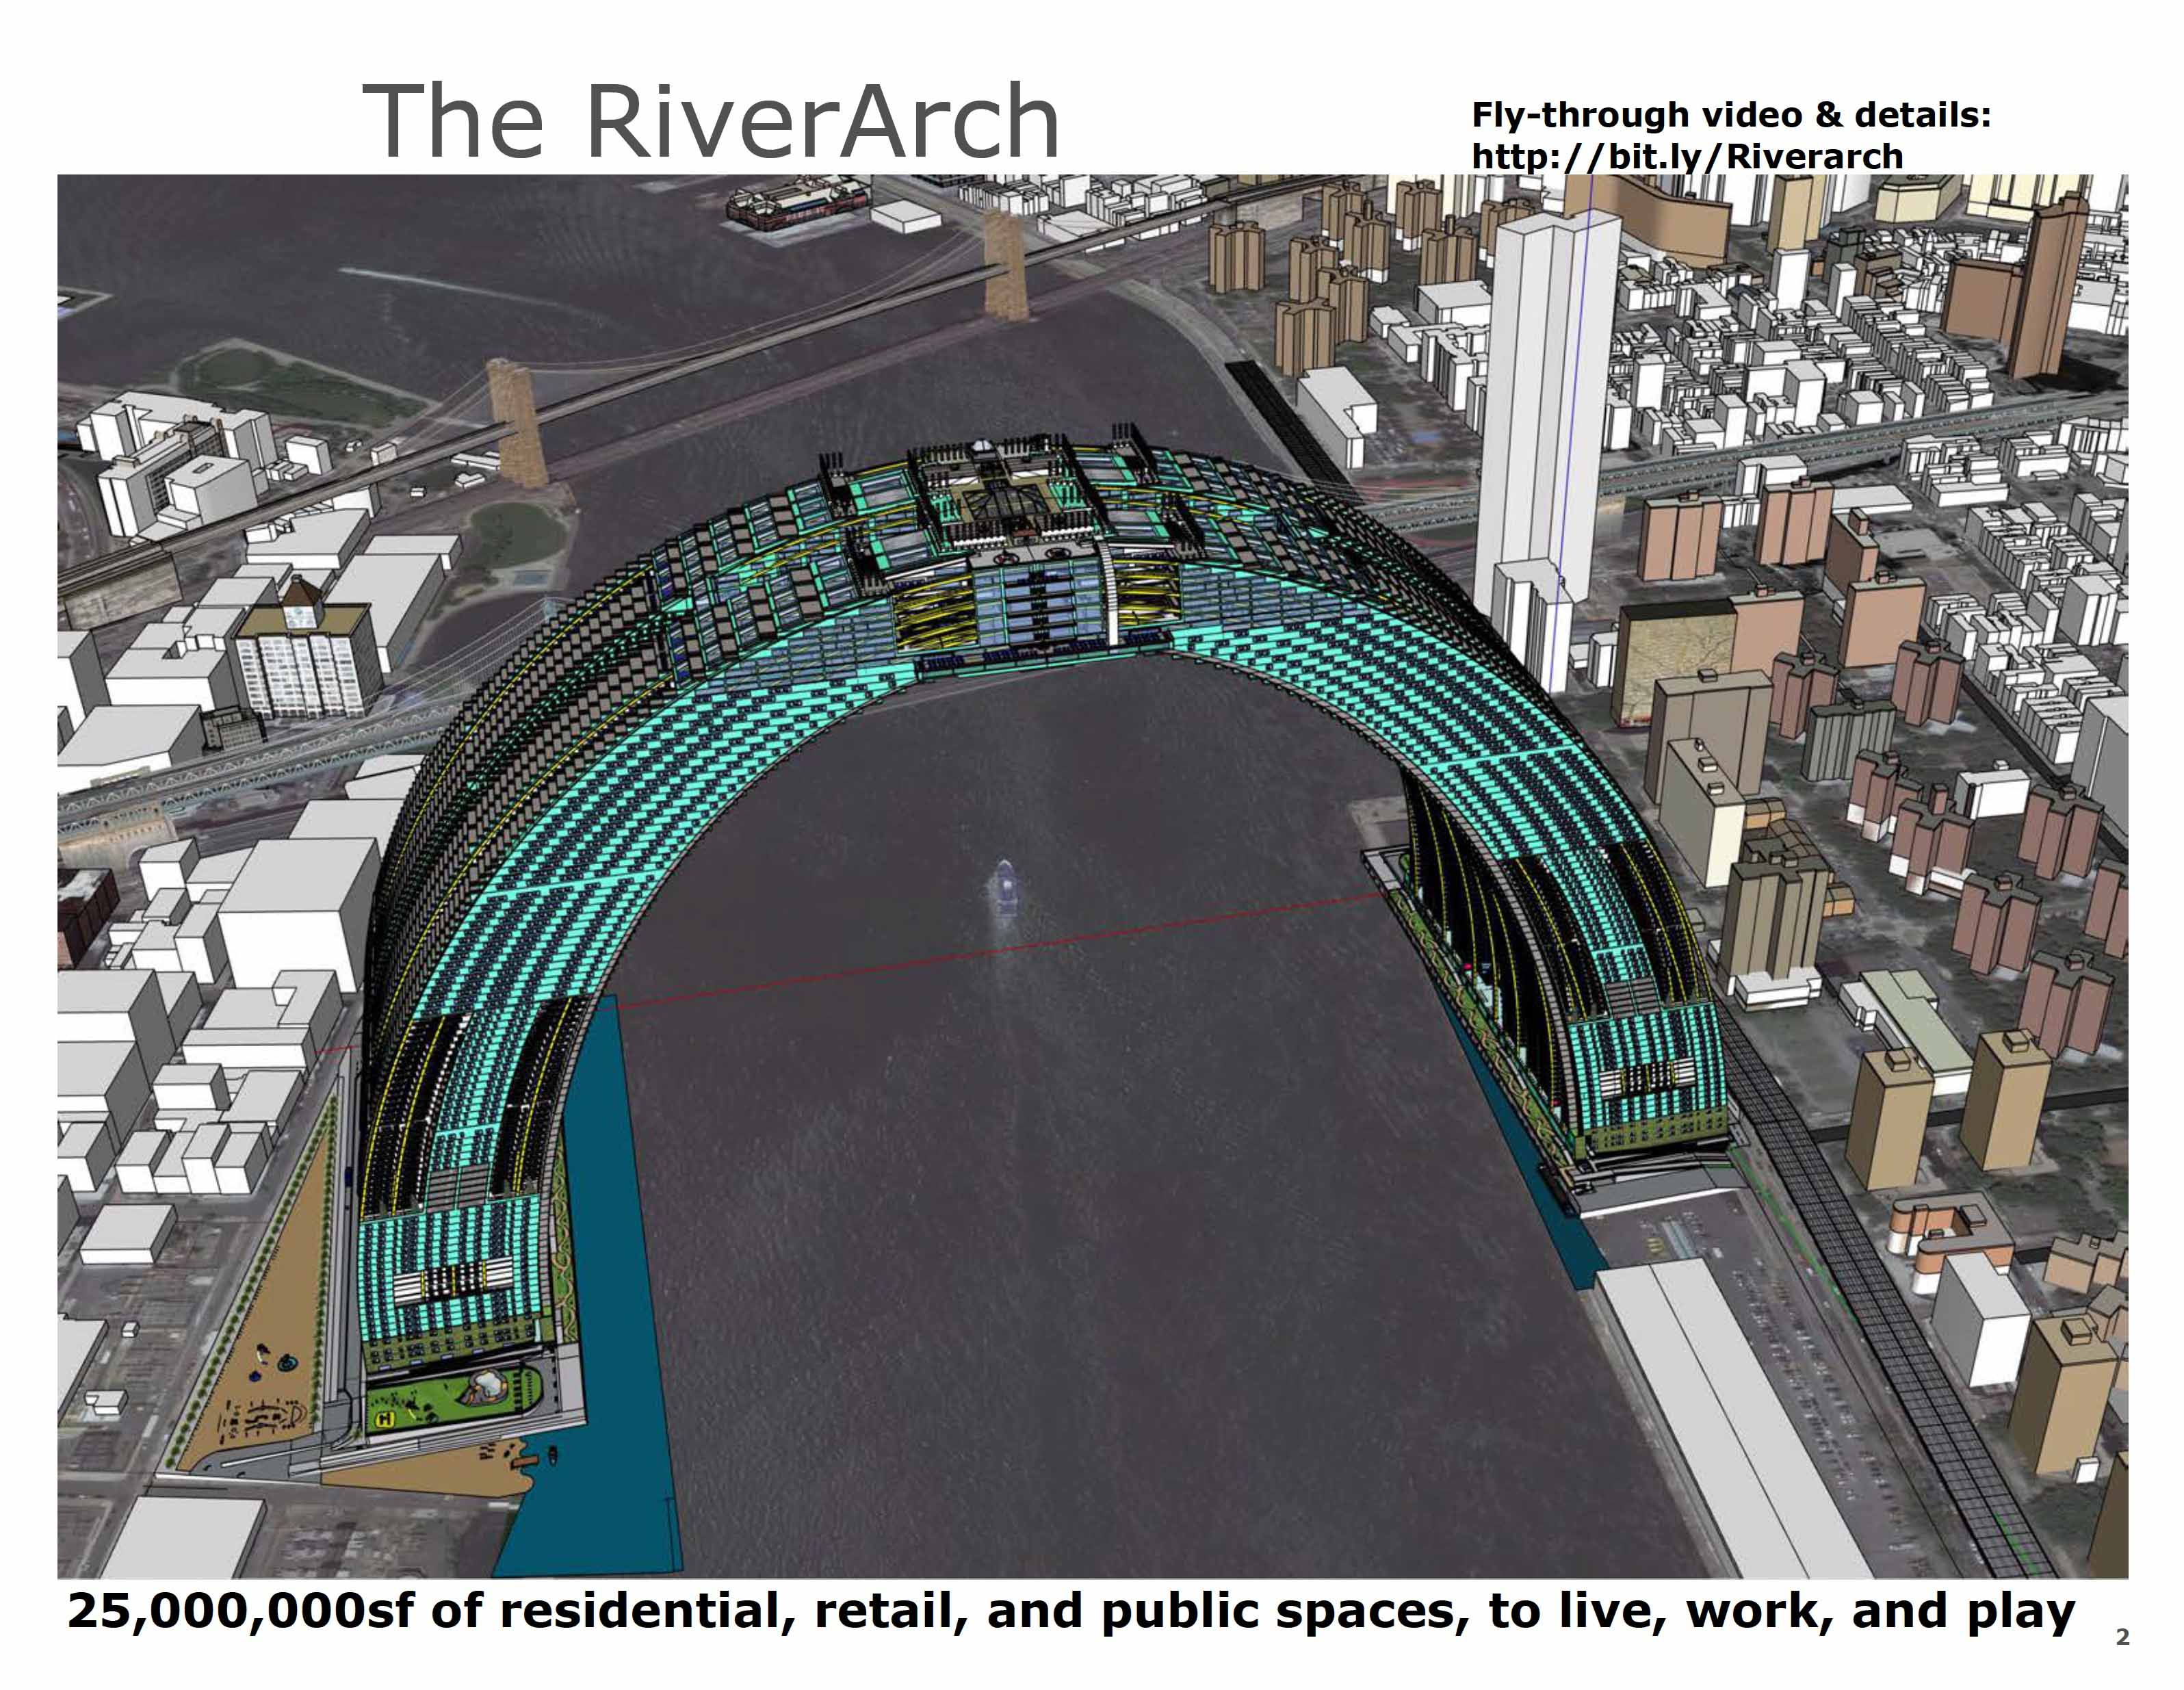 Article about The RiverArch